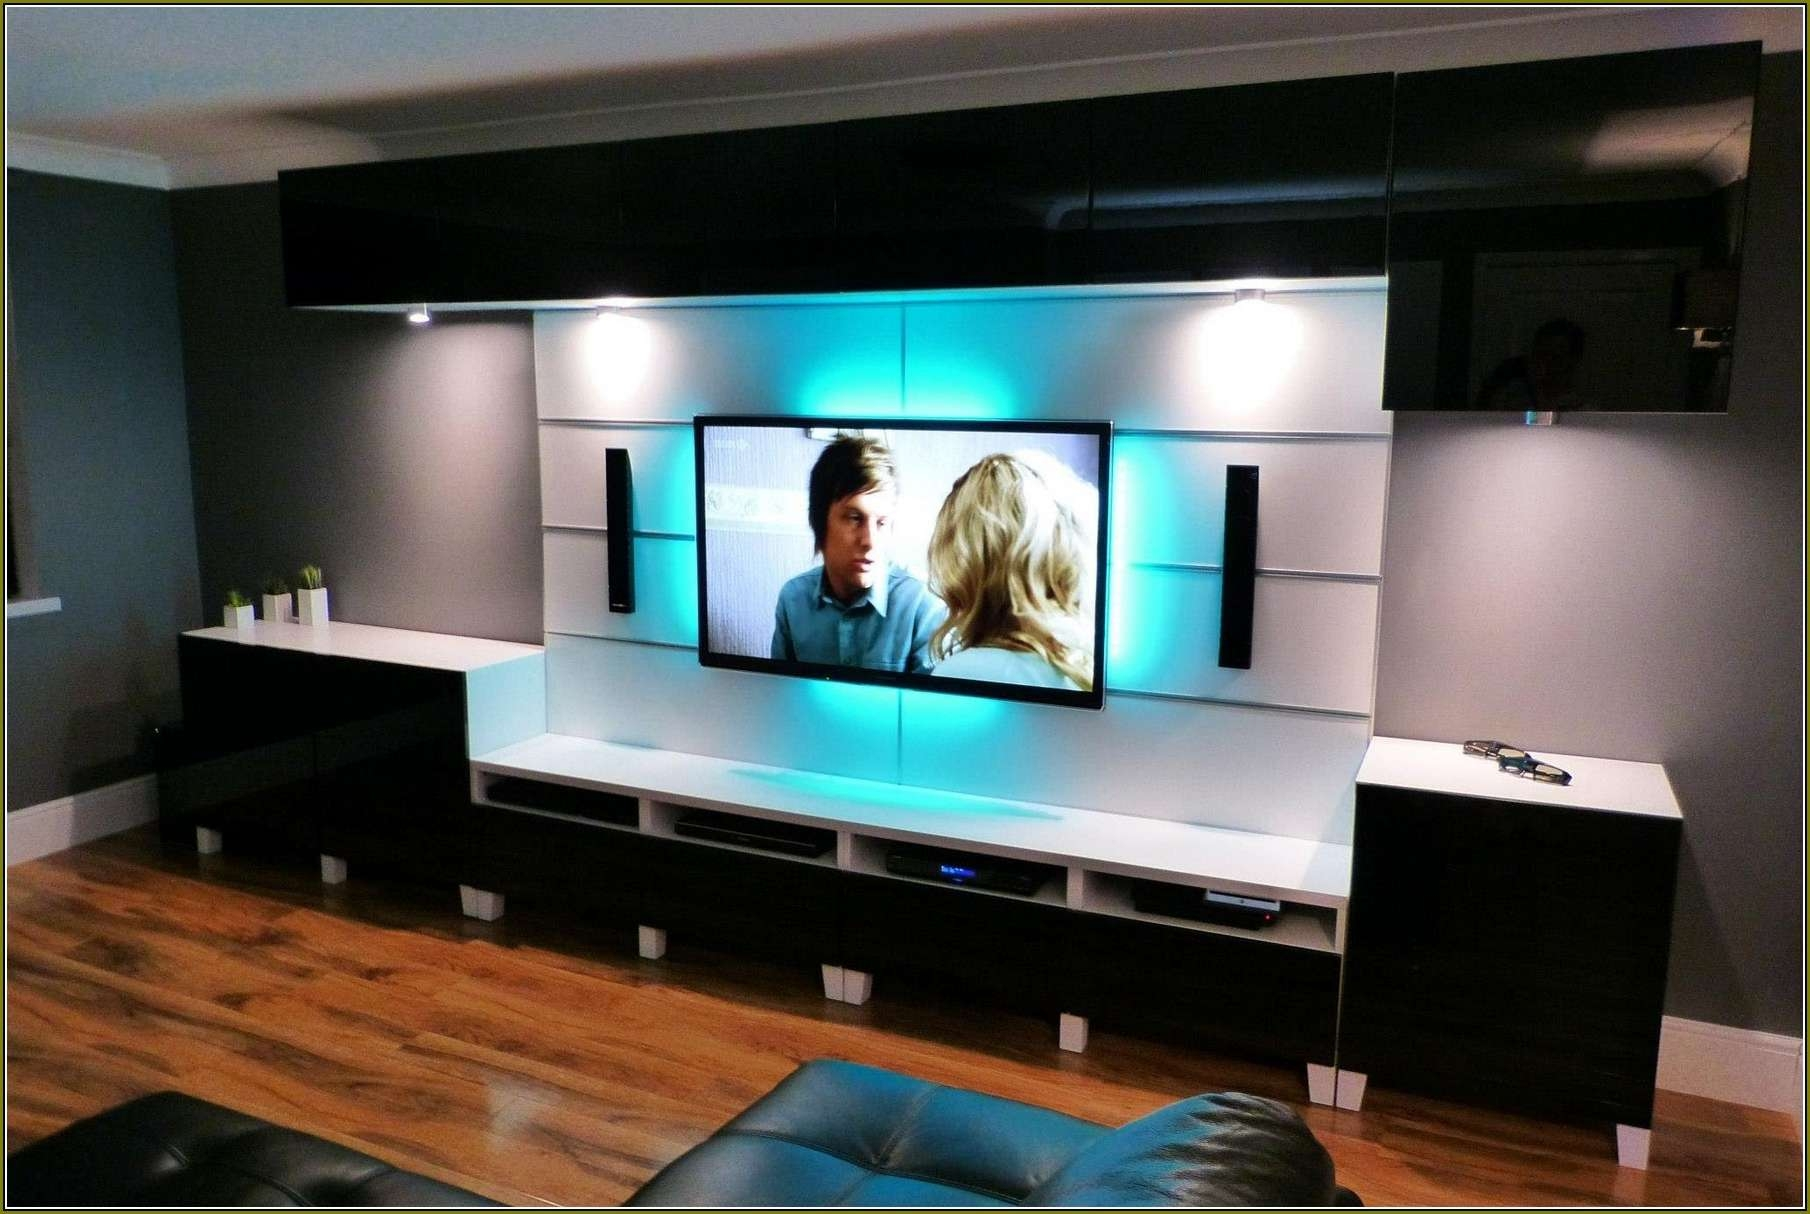 White Solid Wood Wall Mount Tv Stand With Blue Led Light Of With Regard To Tv Stands With Led Lights (View 15 of 15)